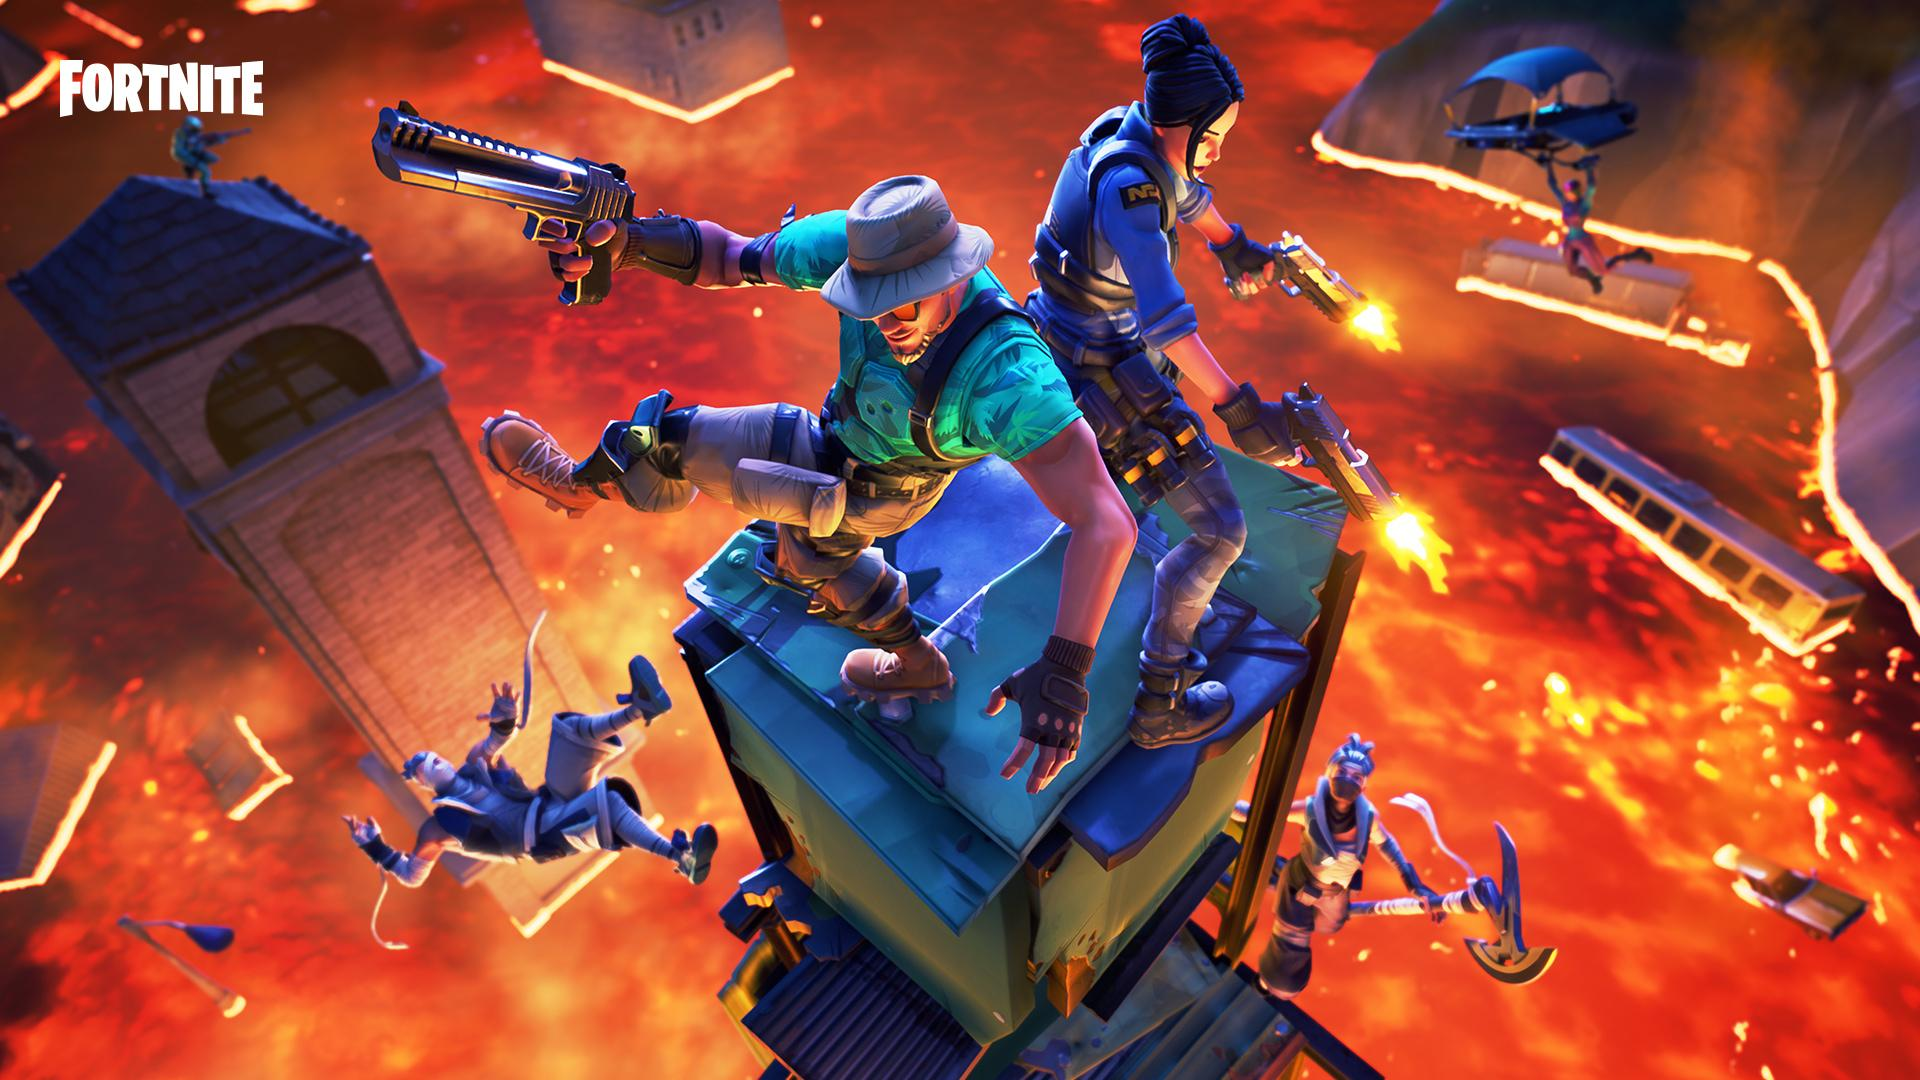 Fortnite Update Adds New Floor Is Lava Limited Time Mode